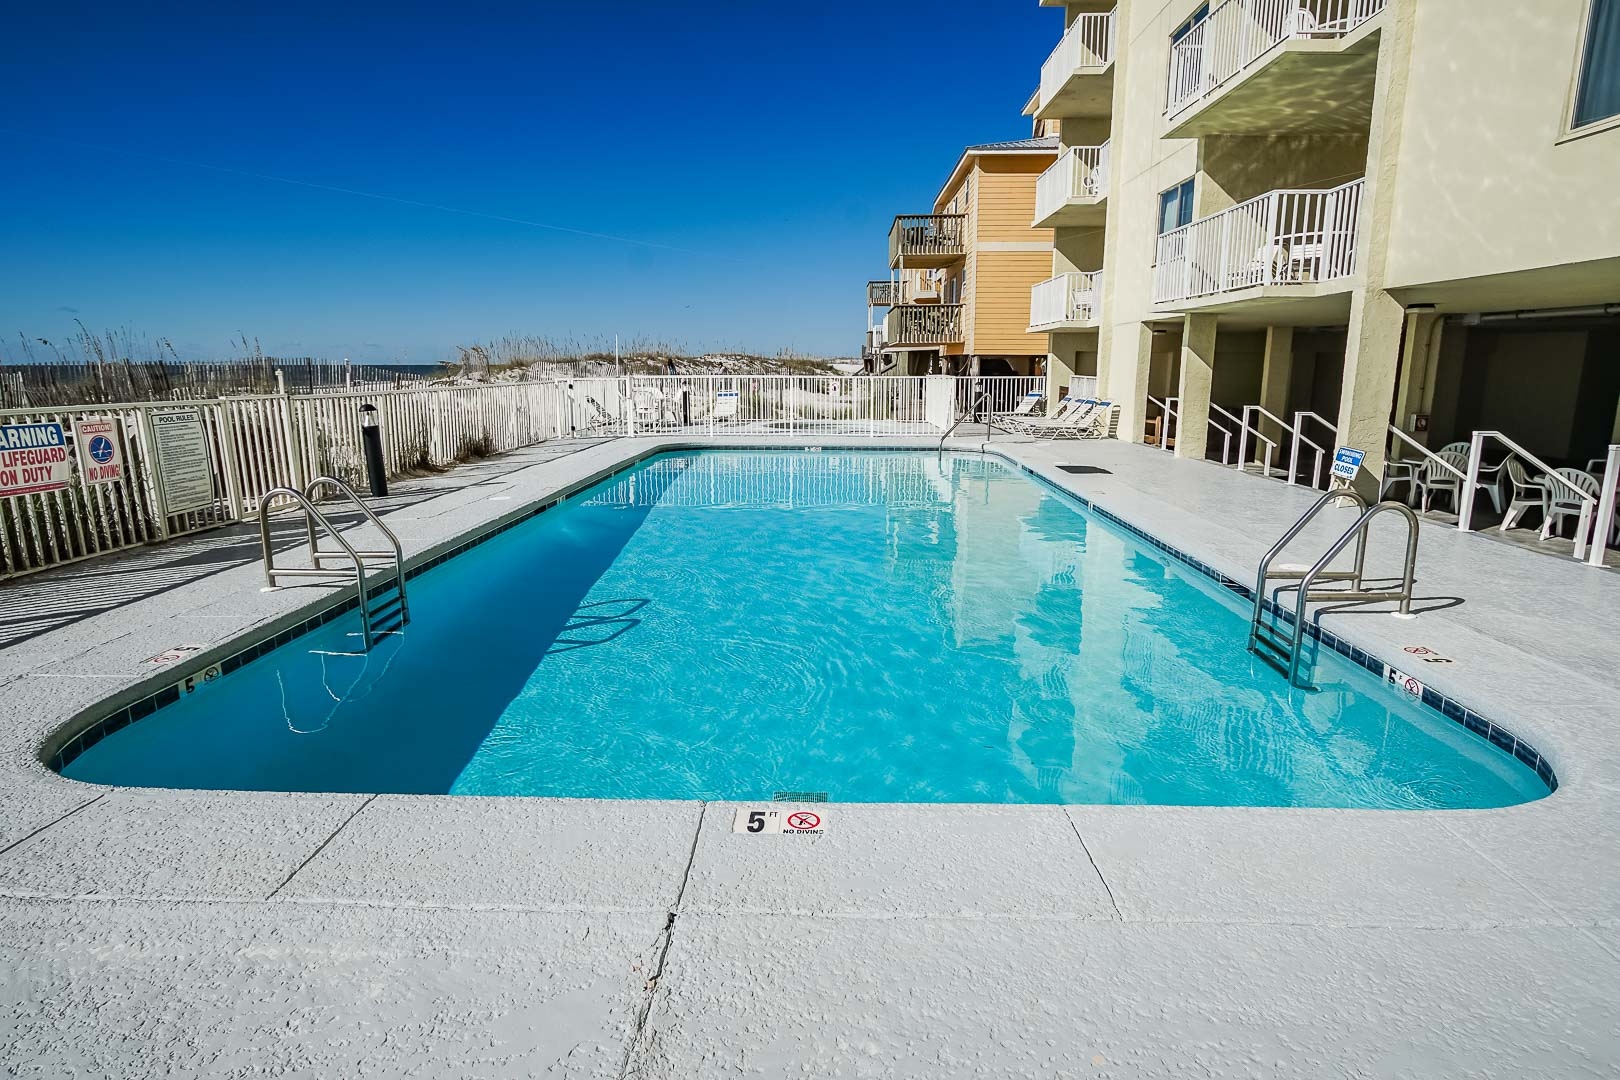 An expansive swimming pool at VRI's Shoreline Towers in Gulf Shores, Alabama.